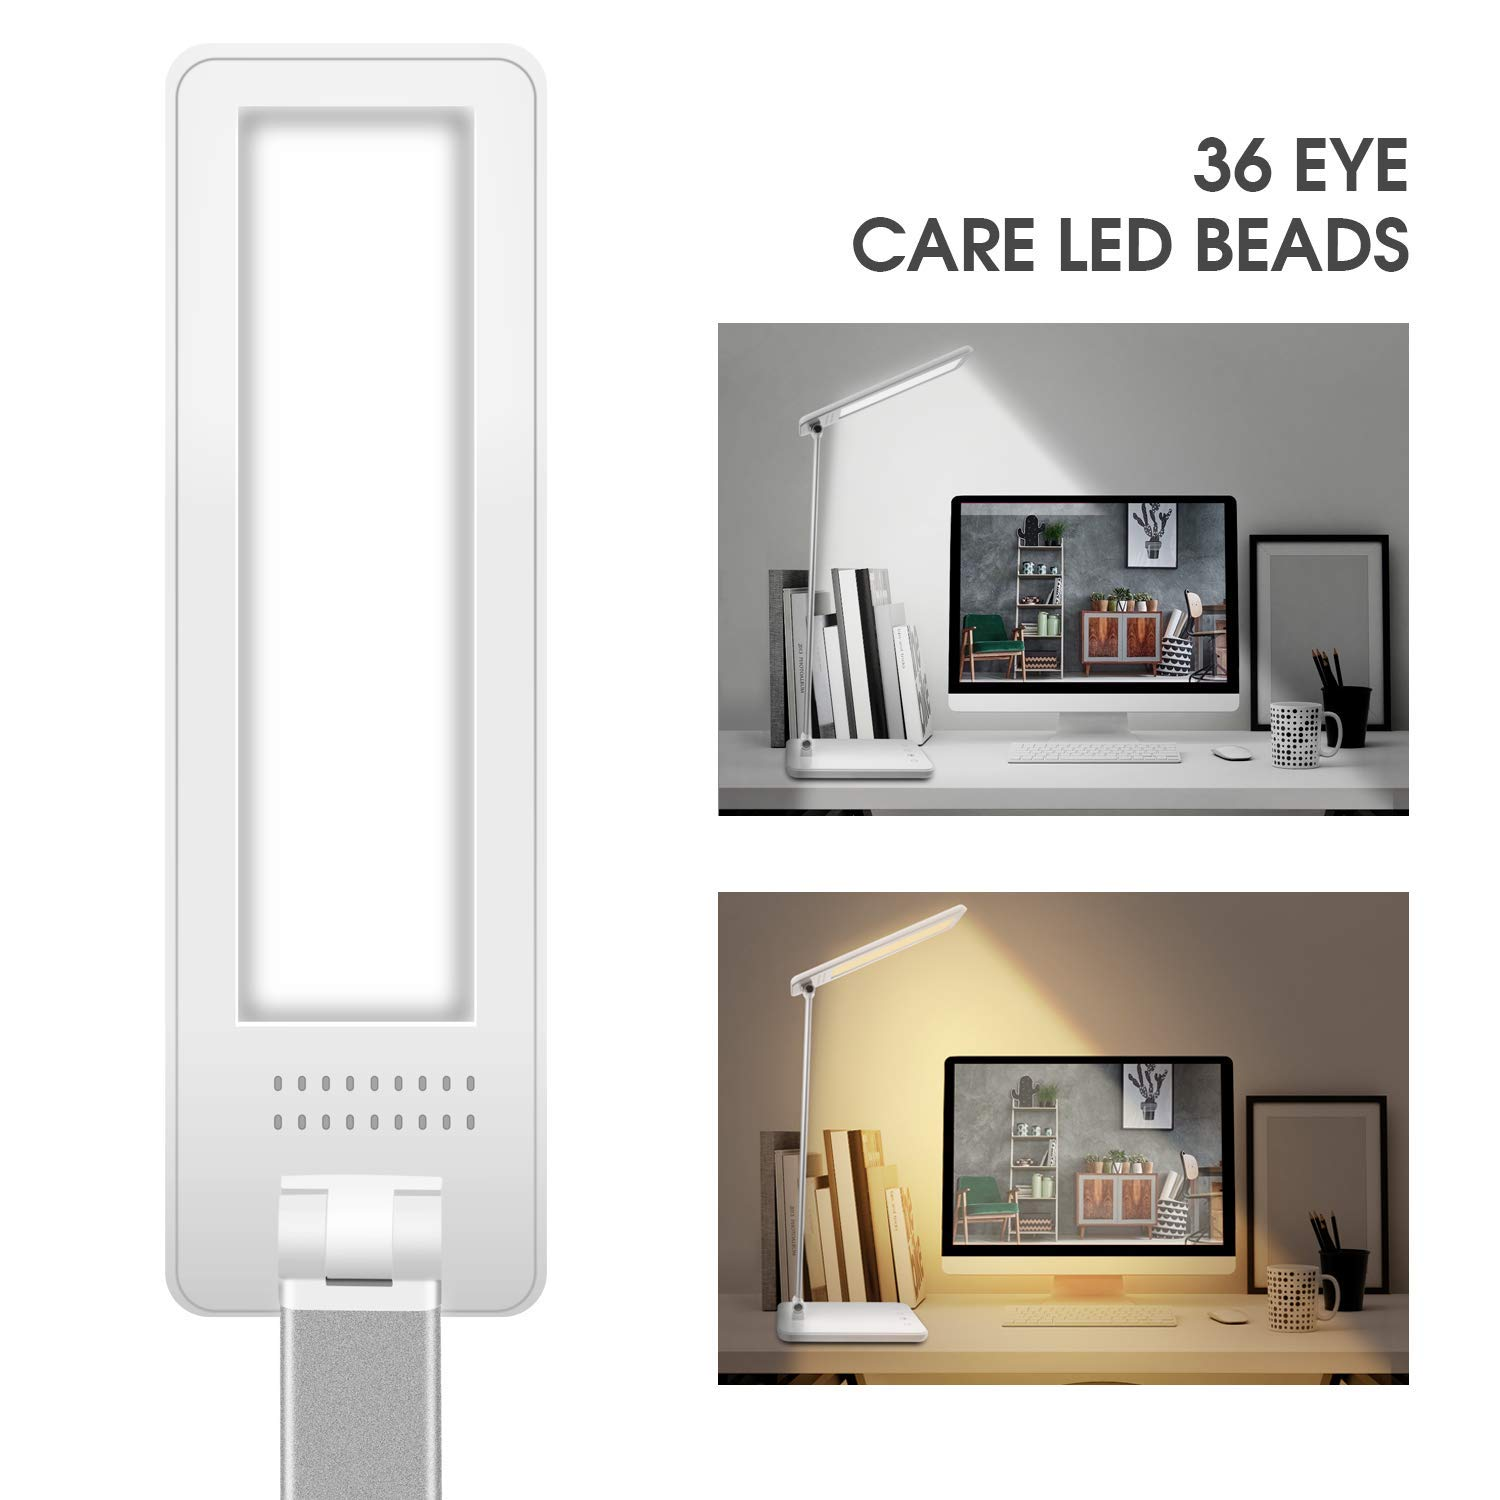 Desk Lamp, Stepless Dimming LED Desk Lamp, Table Lamp with 2.1A Faster Charging Function, 1Hour Auto Timer and Double Memory Function for Office, Reading Room and Bedroom